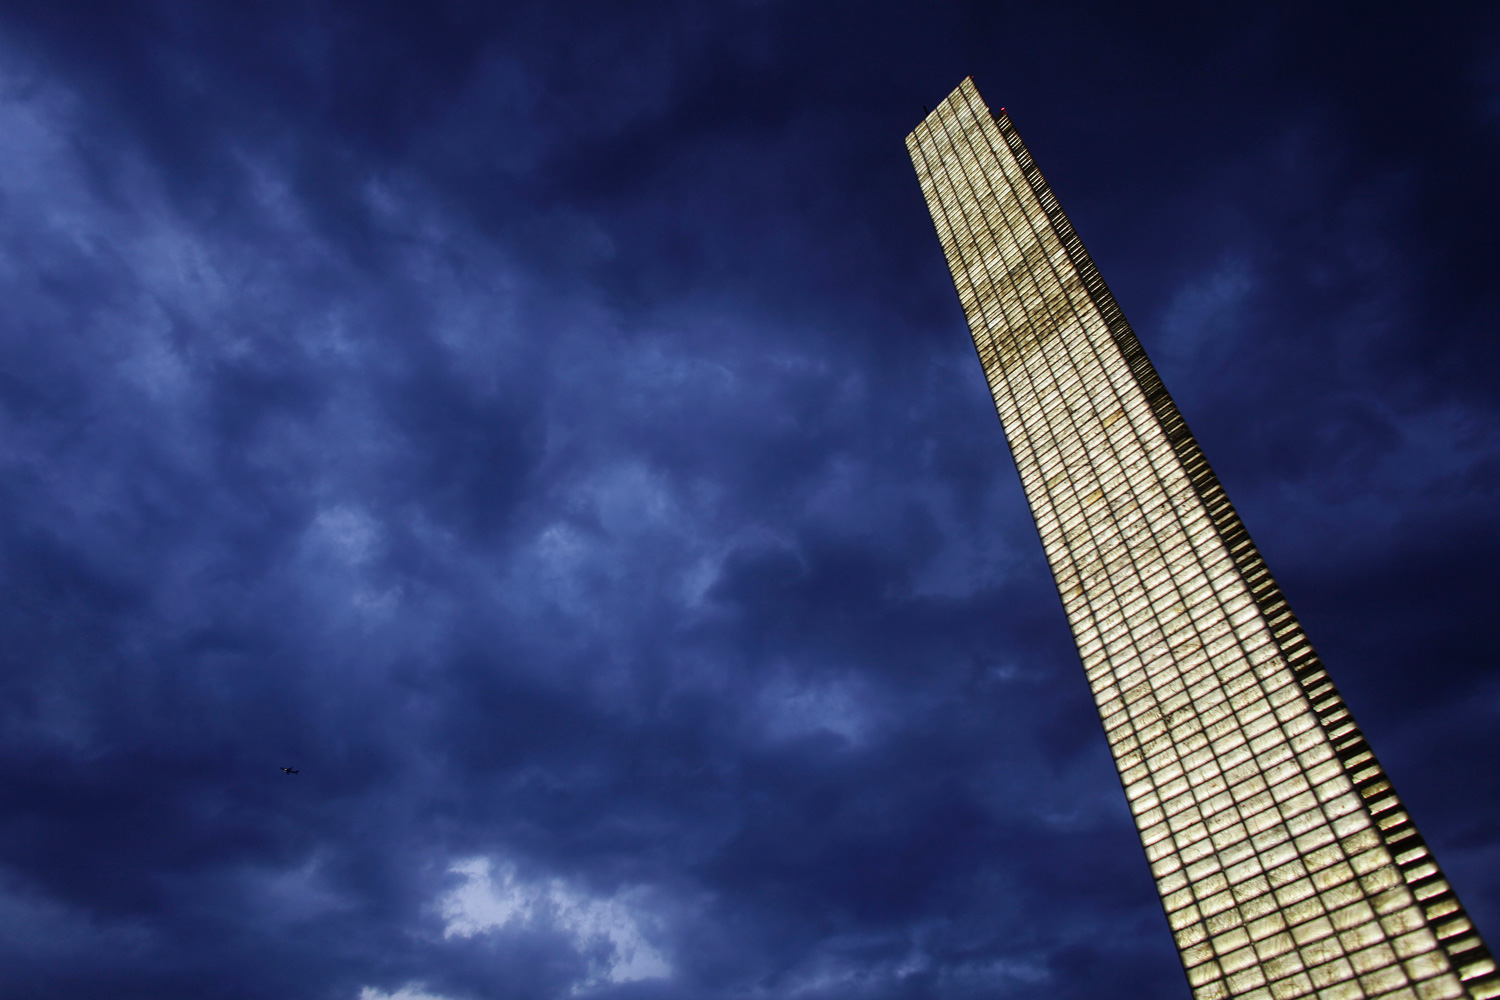 Feb. 27, 2012. The  Pillar of Light  monument lights up as the day ends in Mexico City.